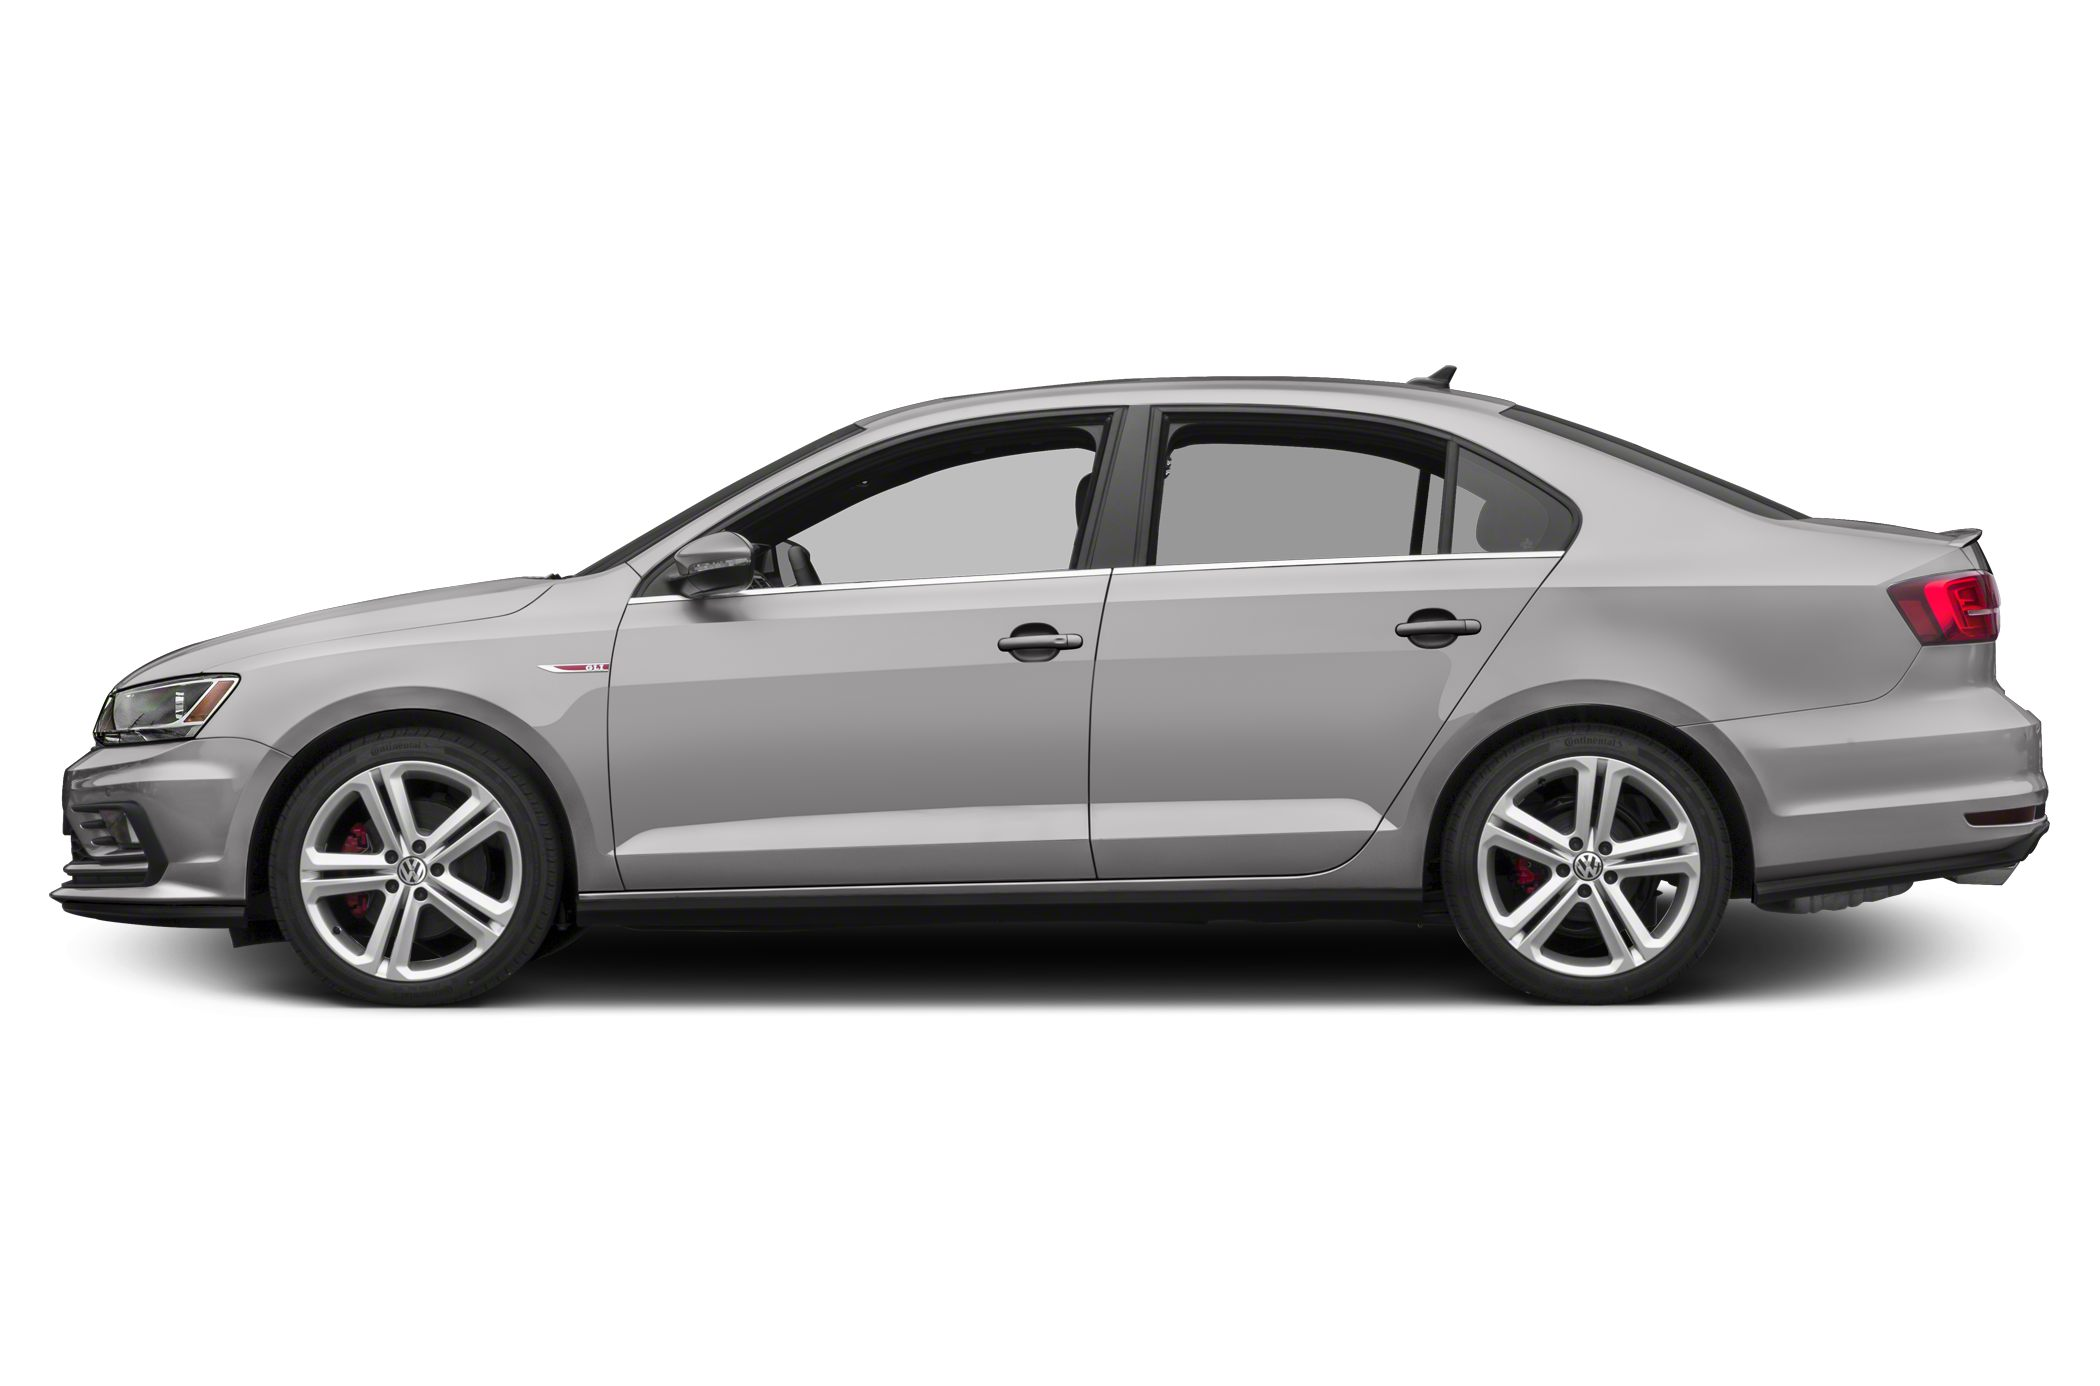 2017 Volkswagen Jetta Reviews, Specs and Prices | Cars.com